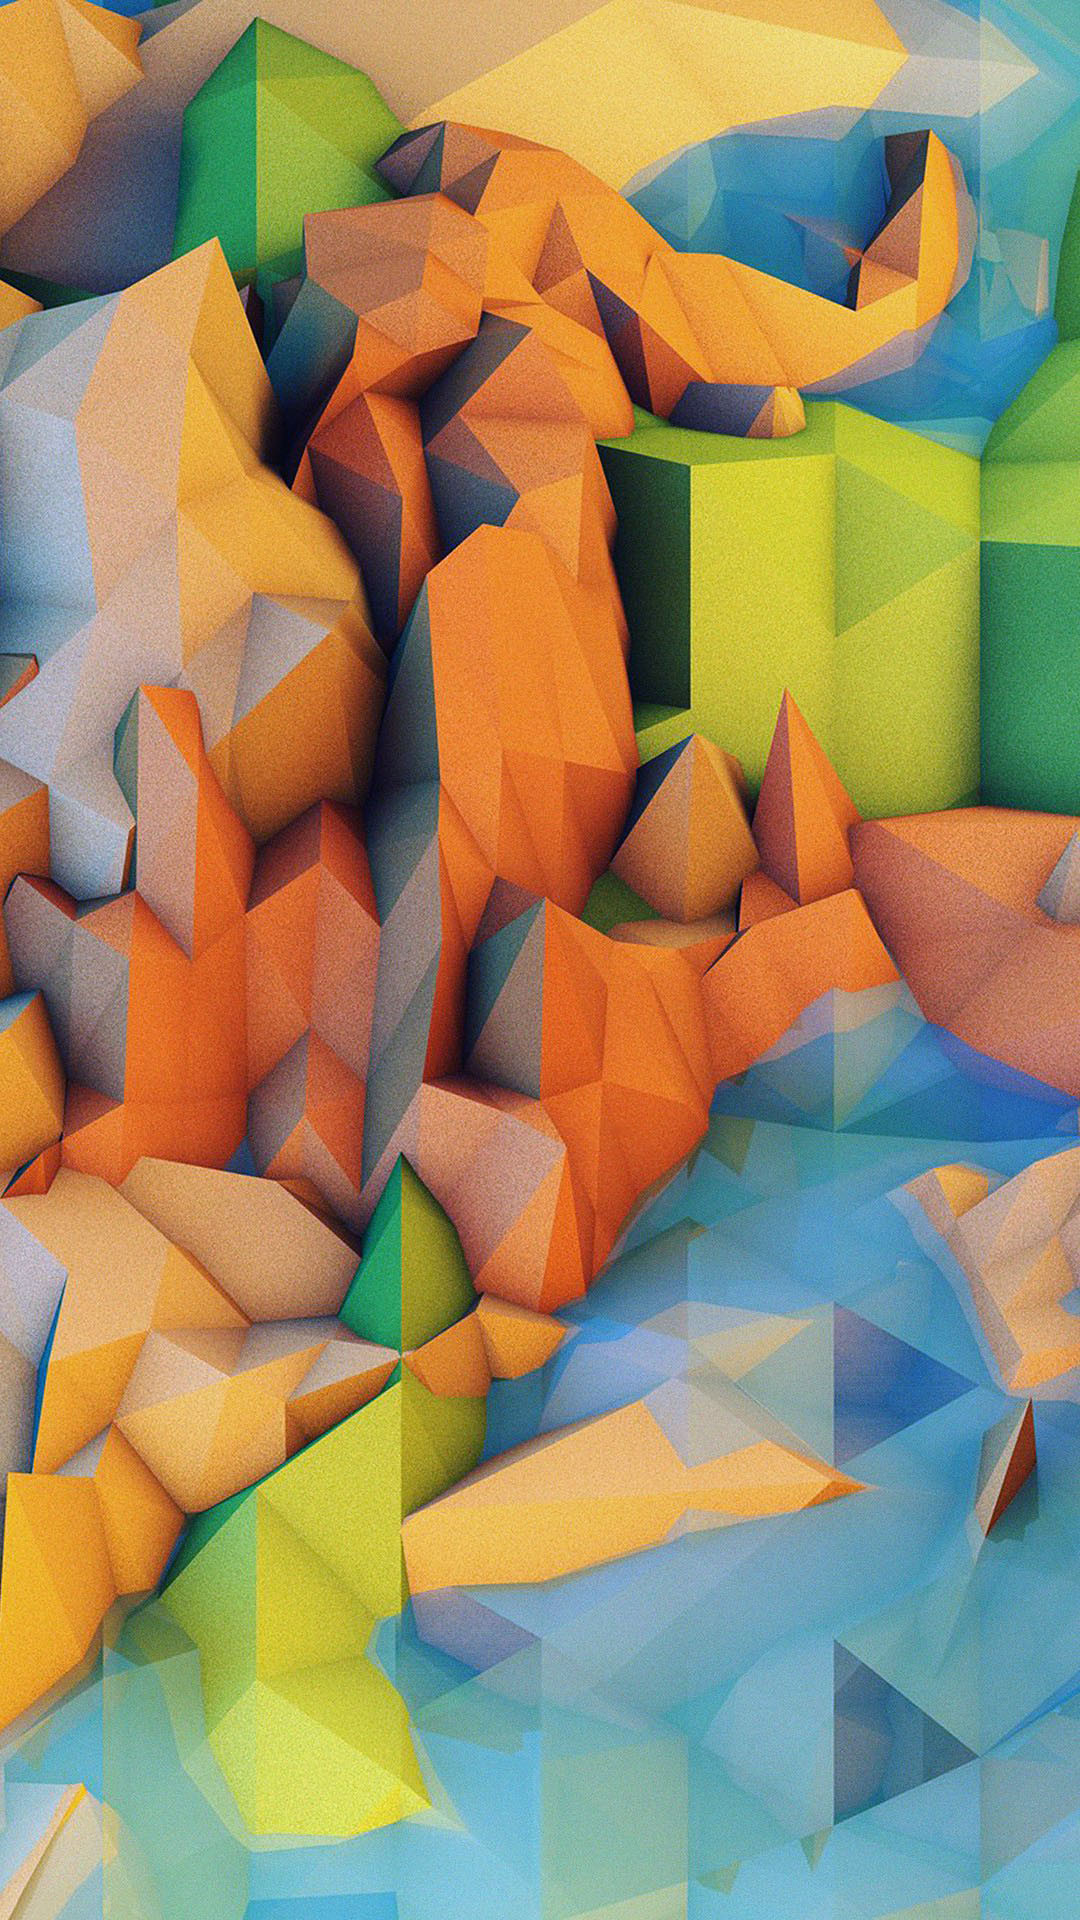 Res: 1080x1920, Low Poly Mountains CGI Android Wallpaper ...